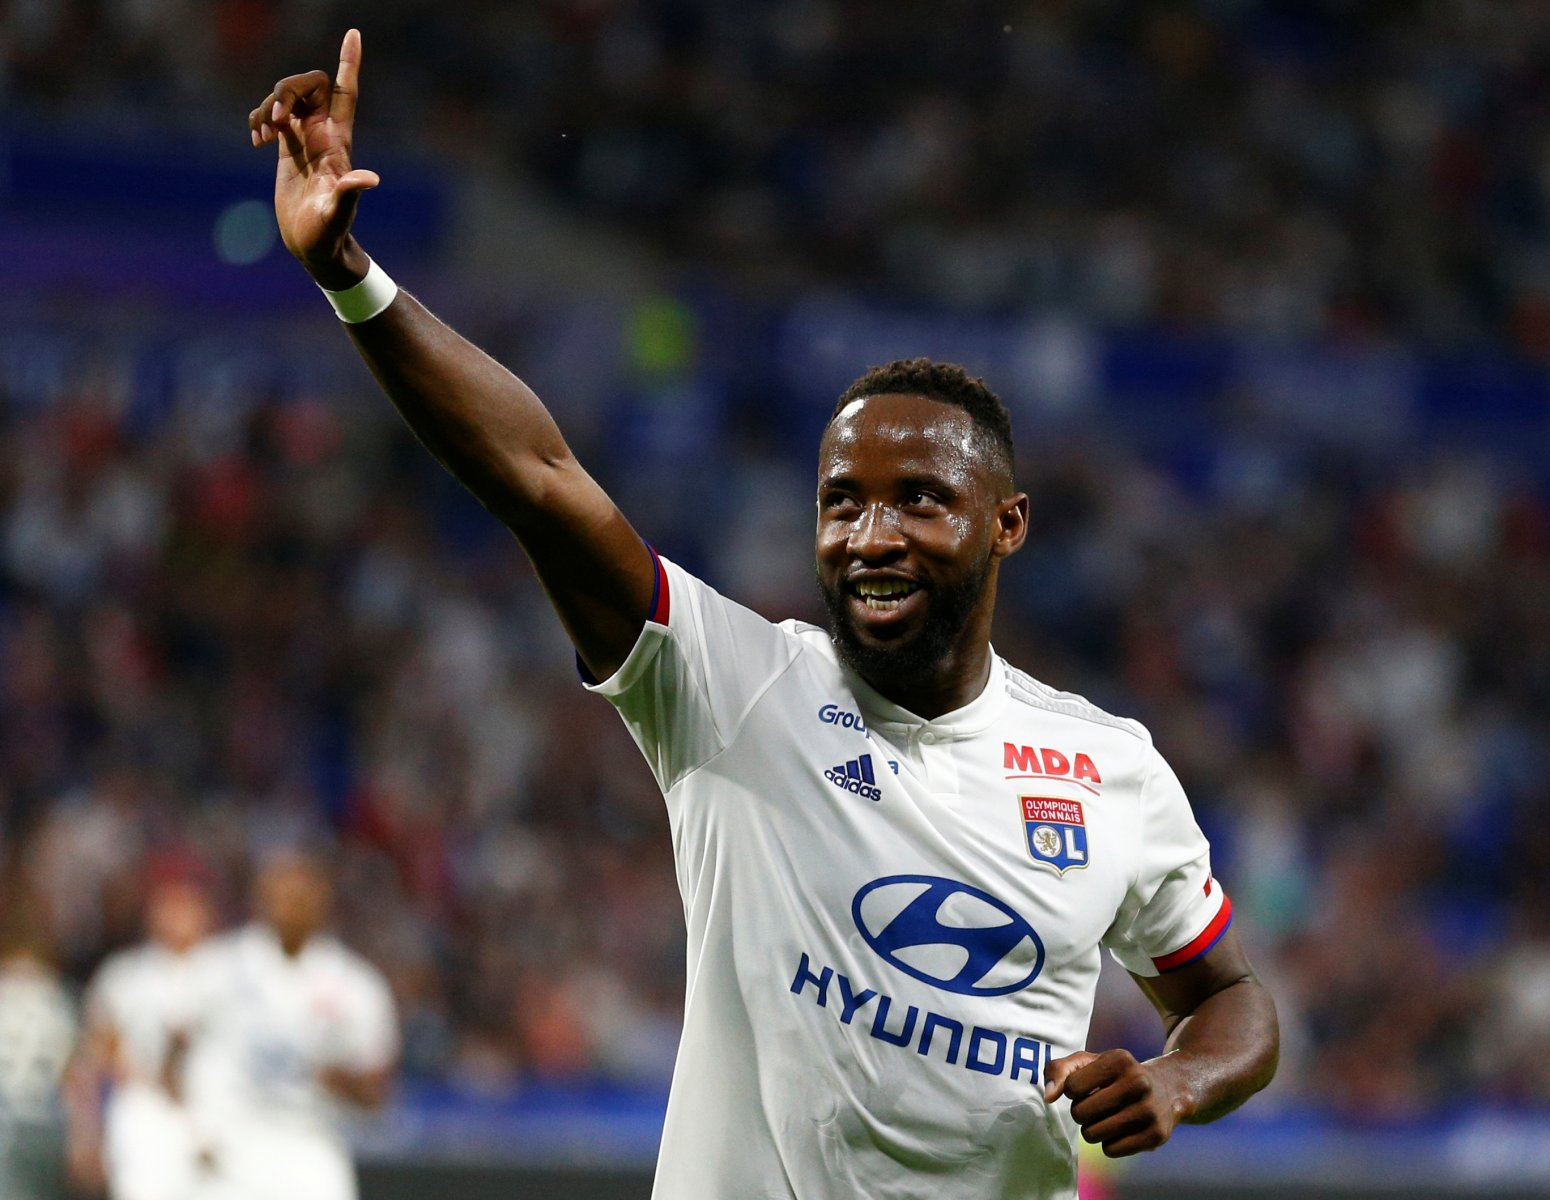 Olympique Lyonnais' Moussa Dembele celebrates scoring their second v Angers